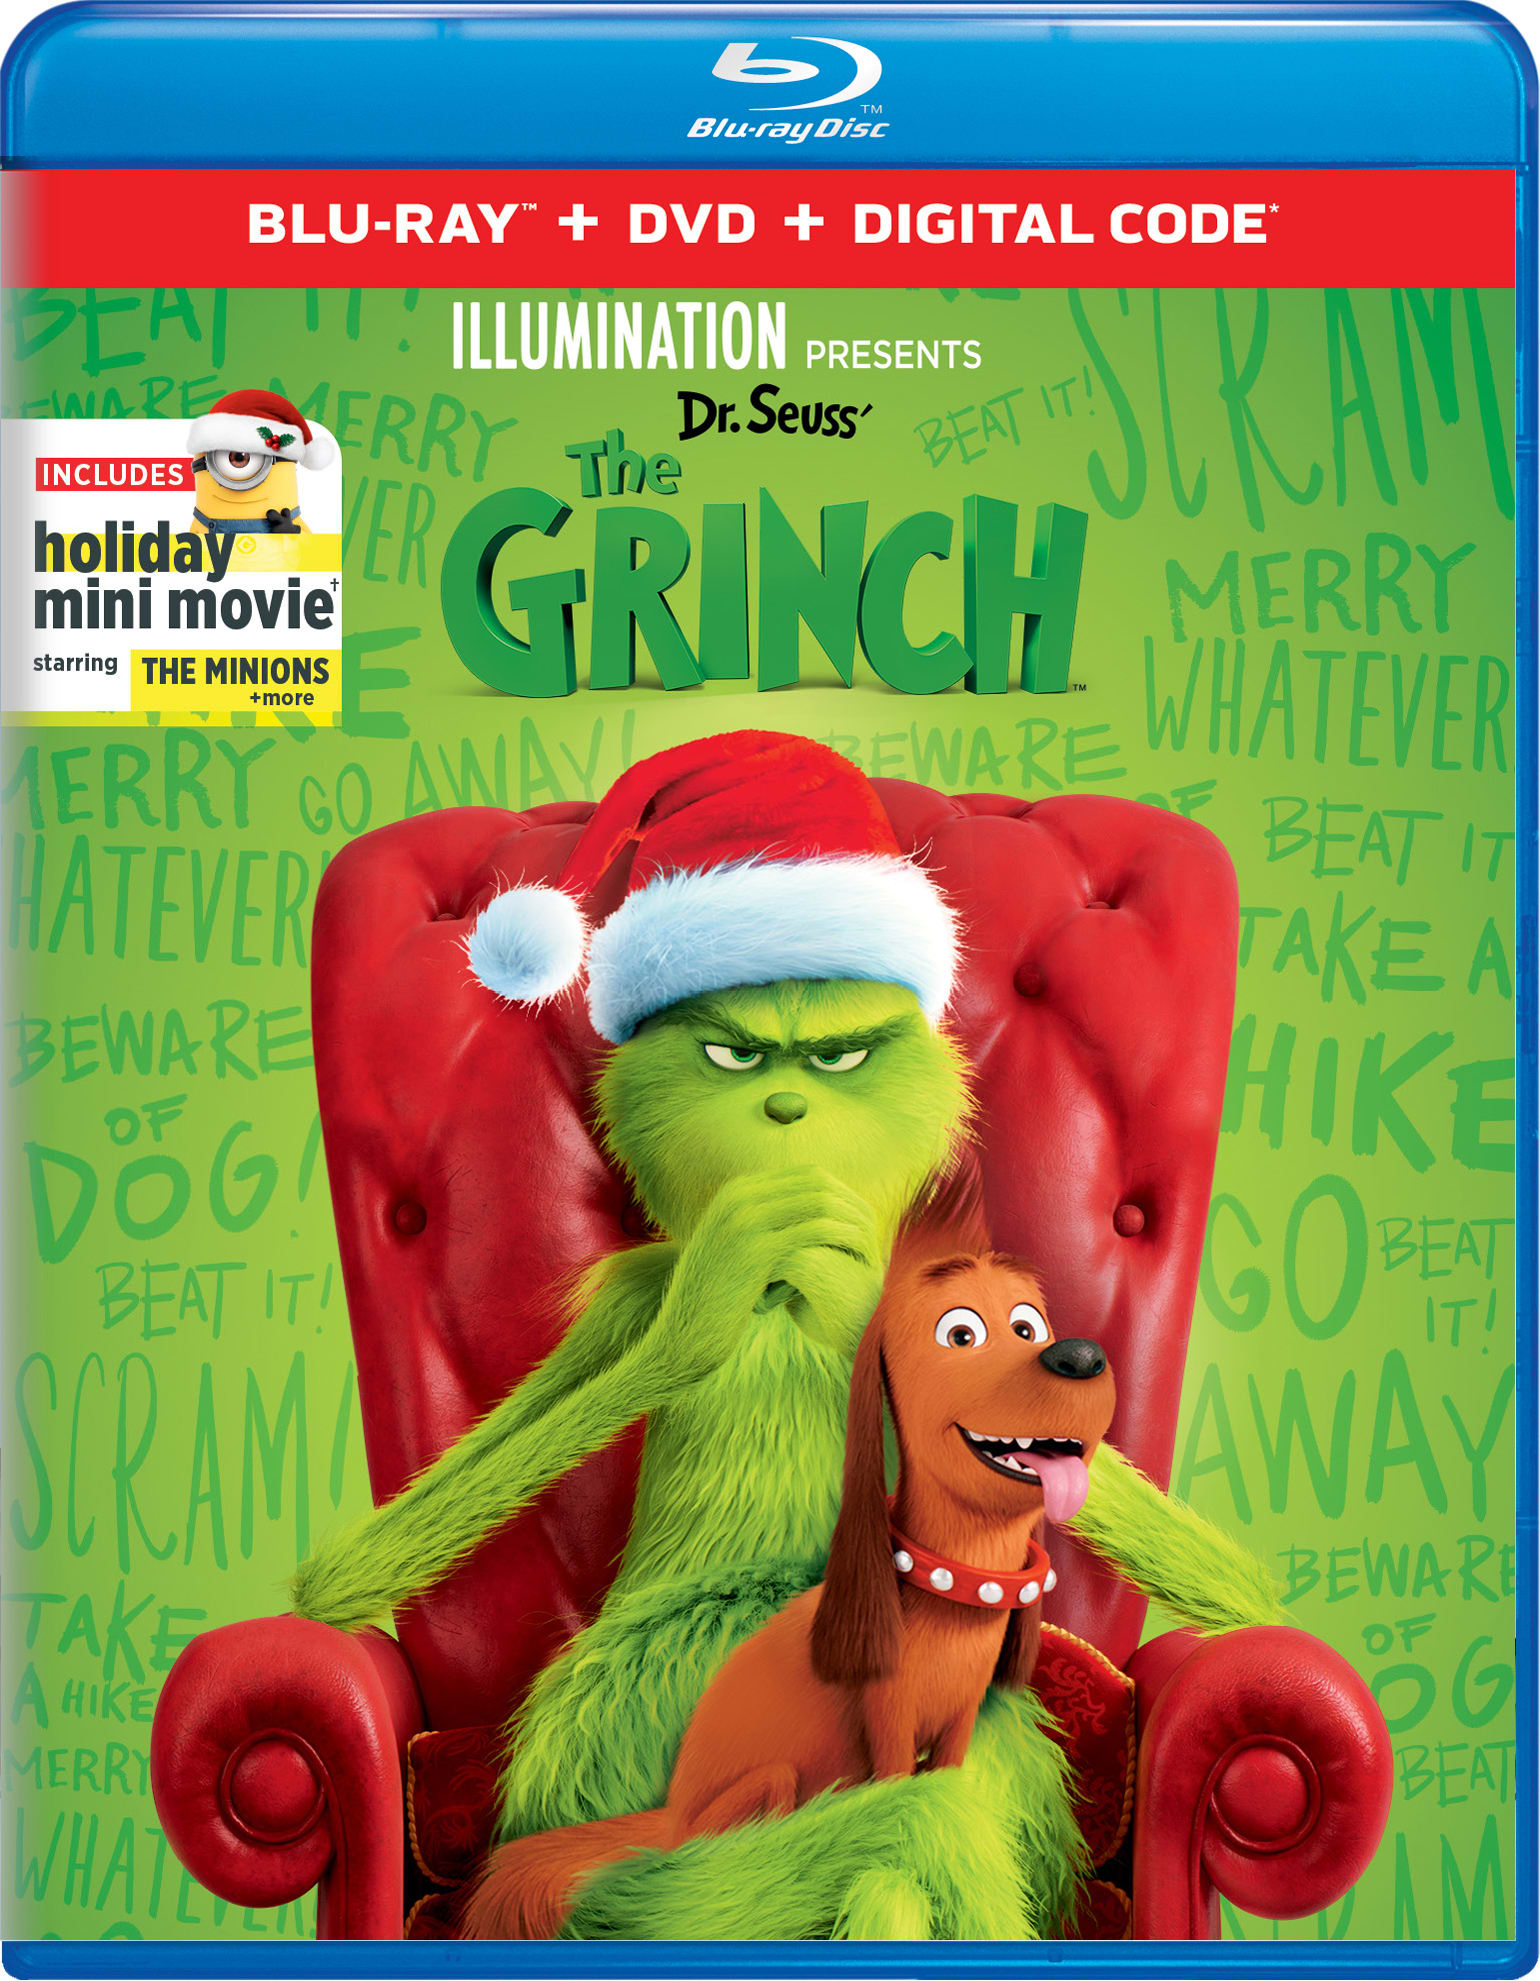 Illumination Presents: Dr. Seuss' The Grinch (DVD + Digital) [Blu-ray]